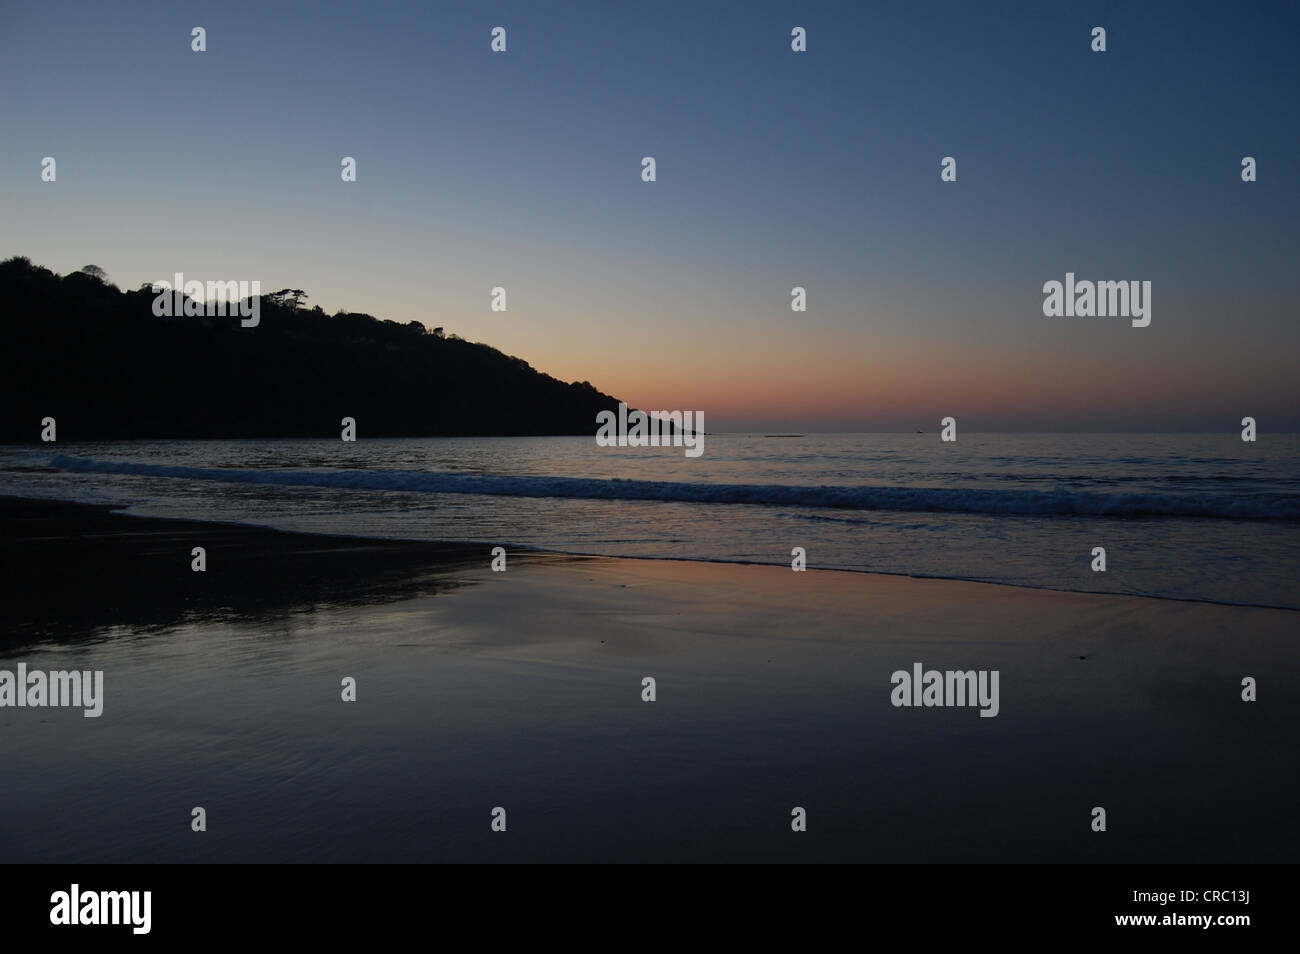 Sunset on Carbis Bay Beach, St Ives, Cornwall. - Stock Image